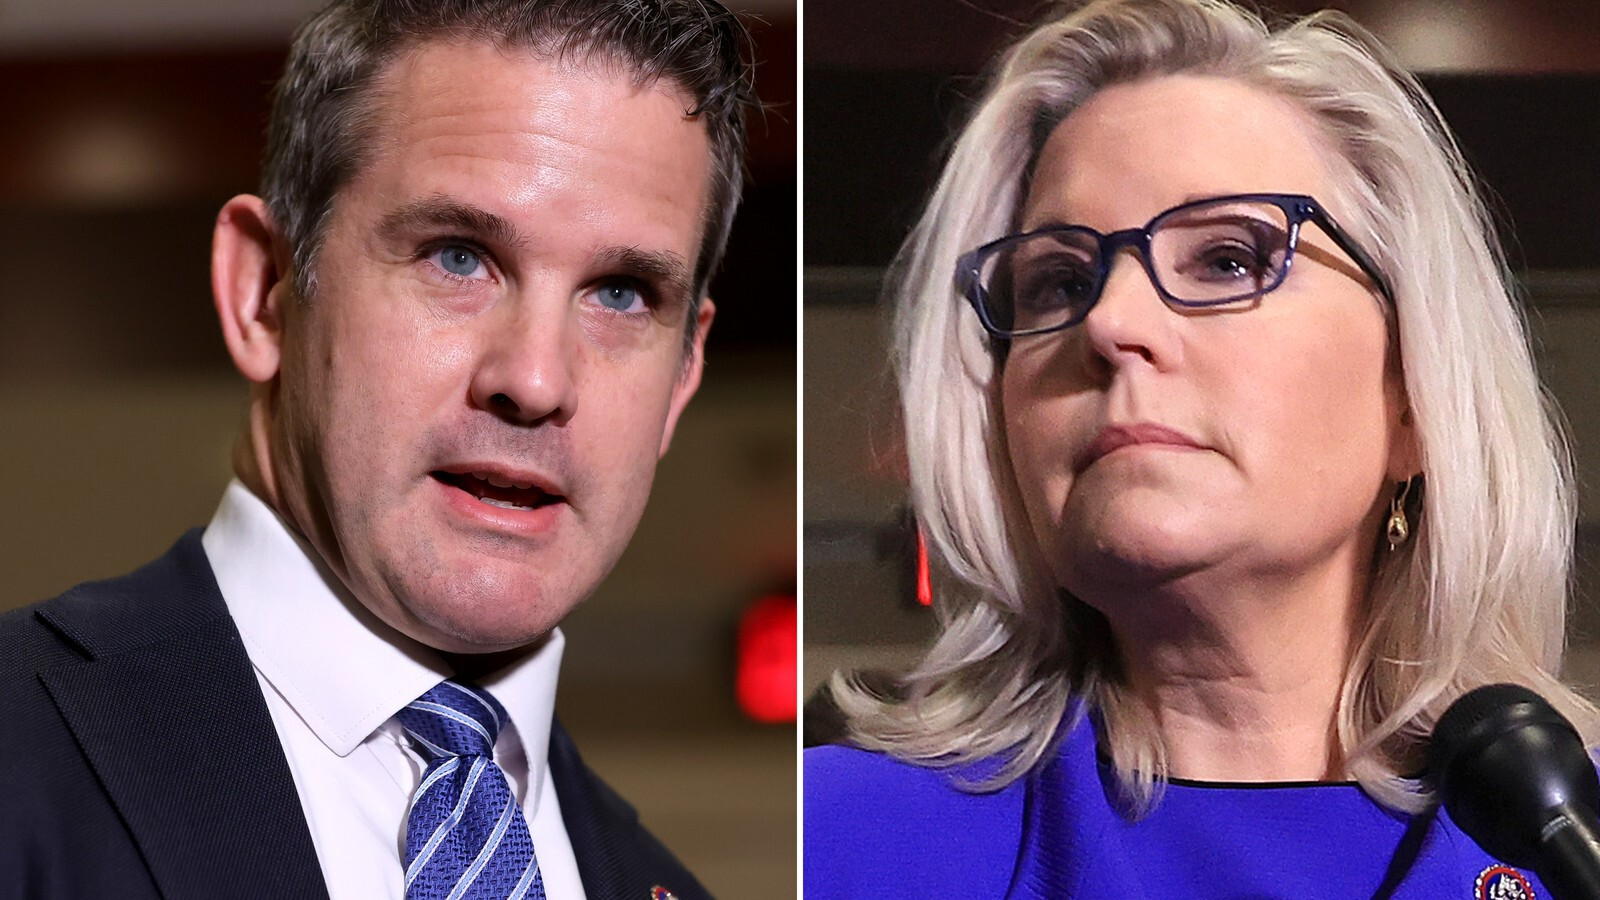 Liz Cheney and Adam Kinzinger prepare for blockbuster hearing amid attacks from their own party